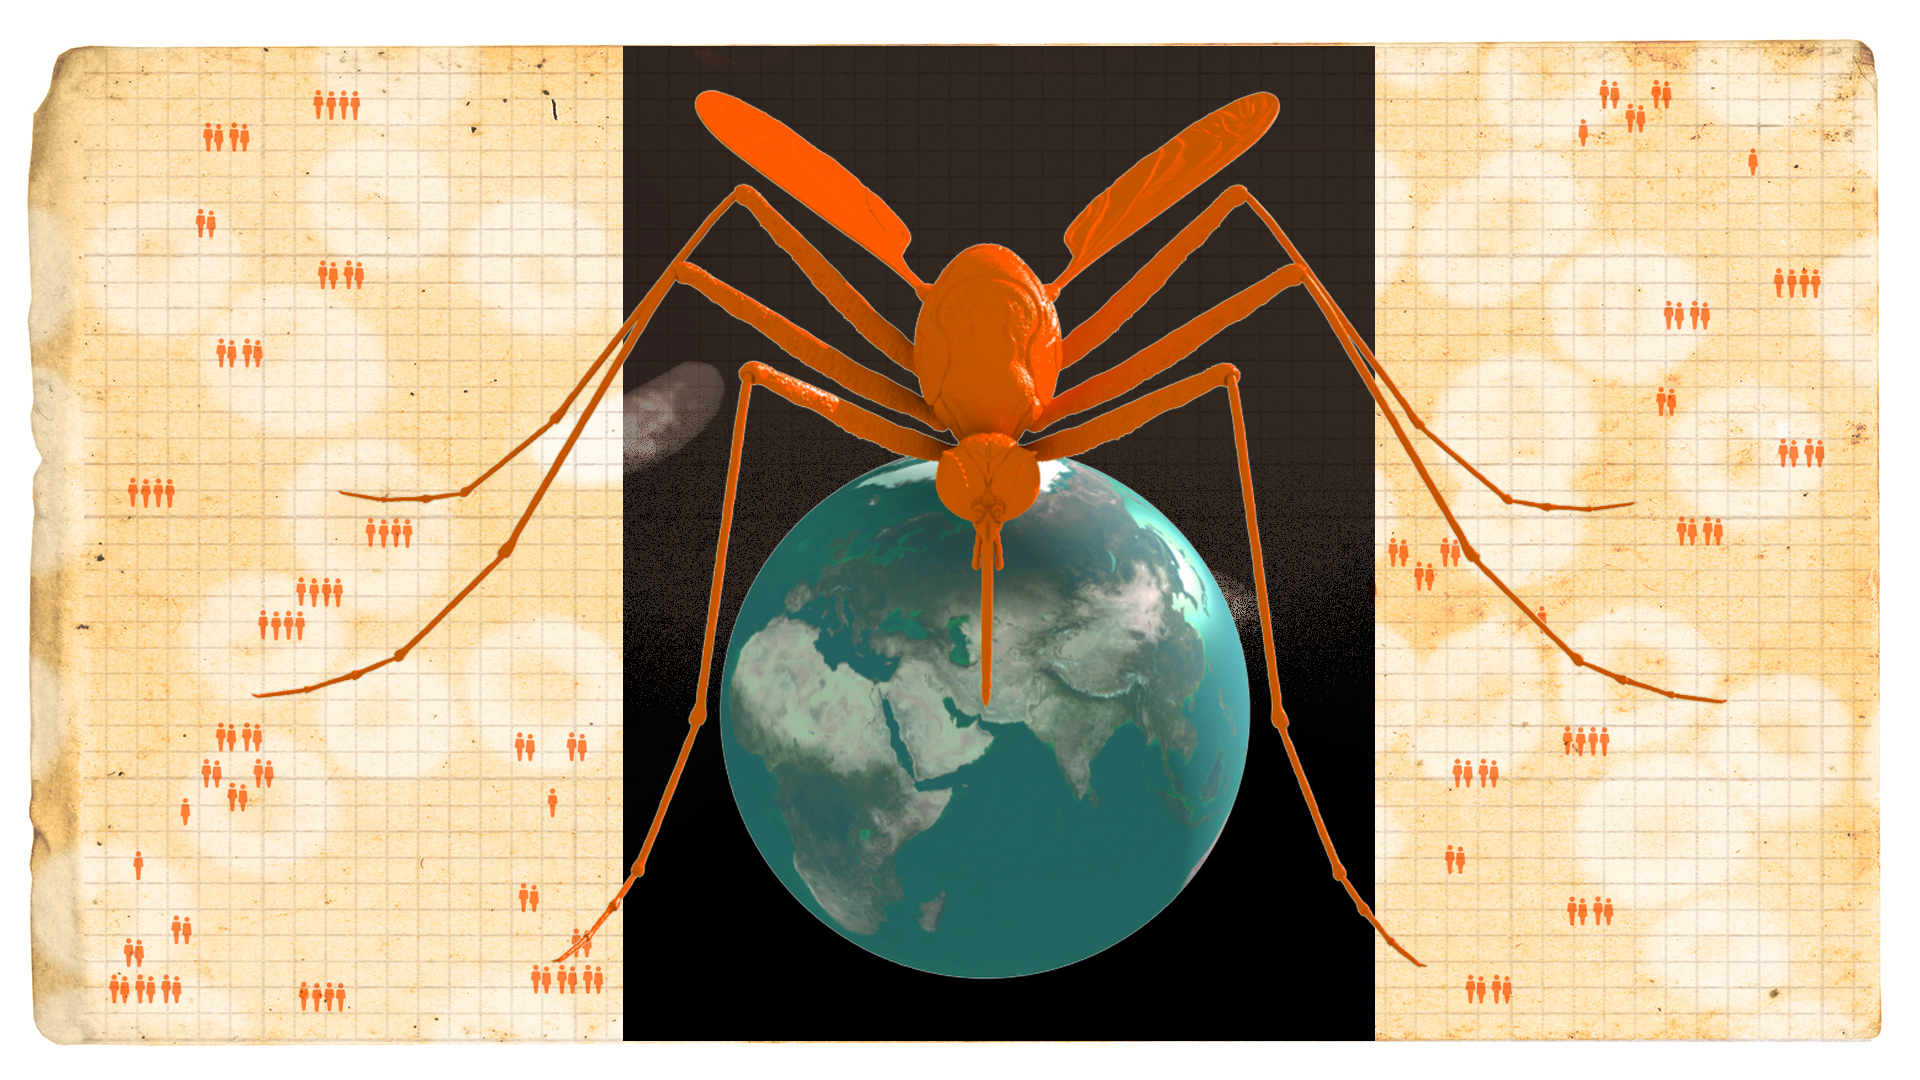 Mosquitoes might be humanity's greatest foe. Should we get rid of them?